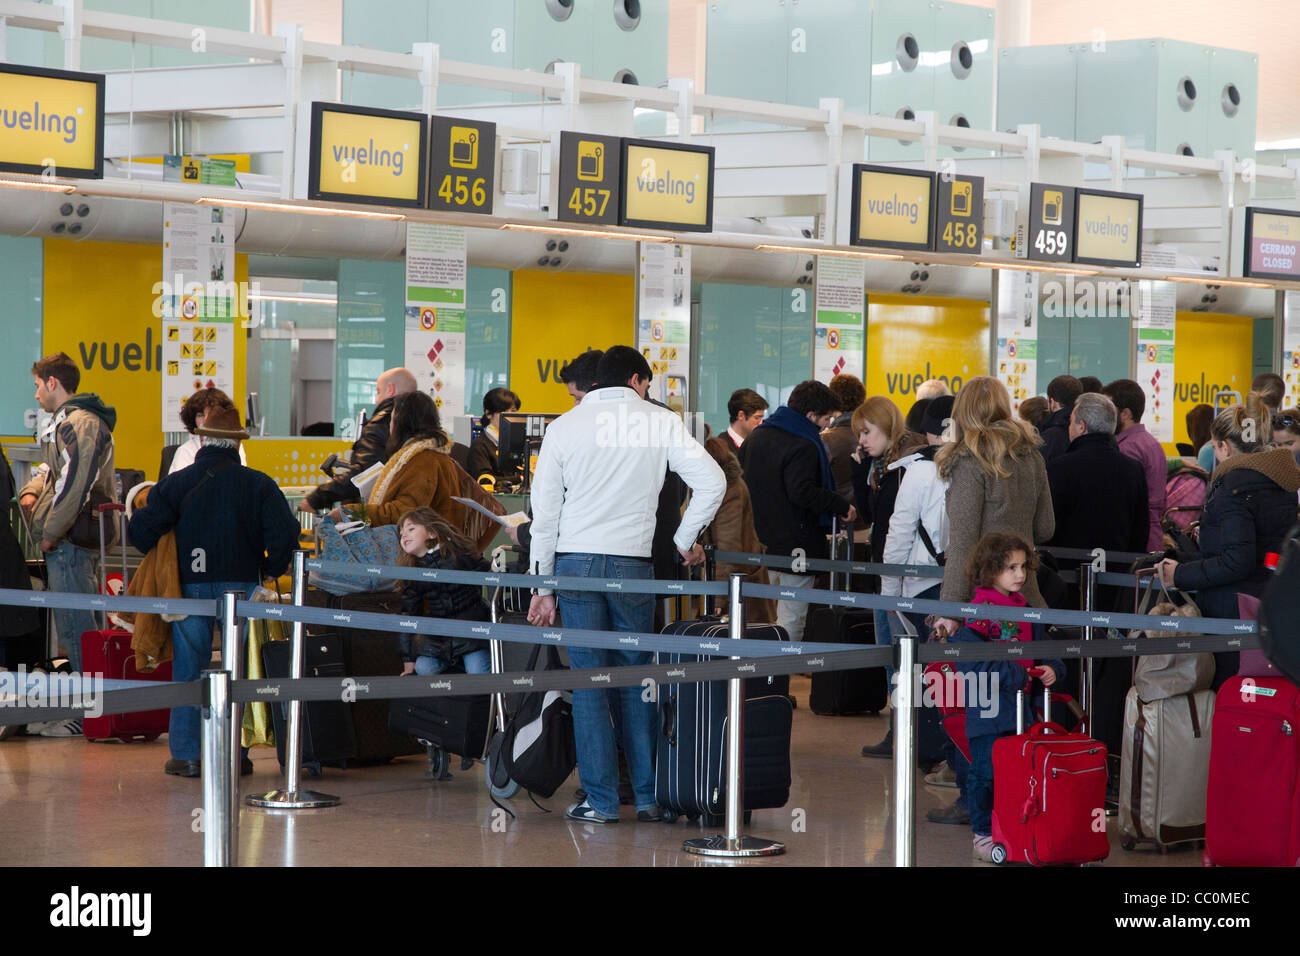 People at Vueling check in desks in Barcelona airport Spain - Stock Image